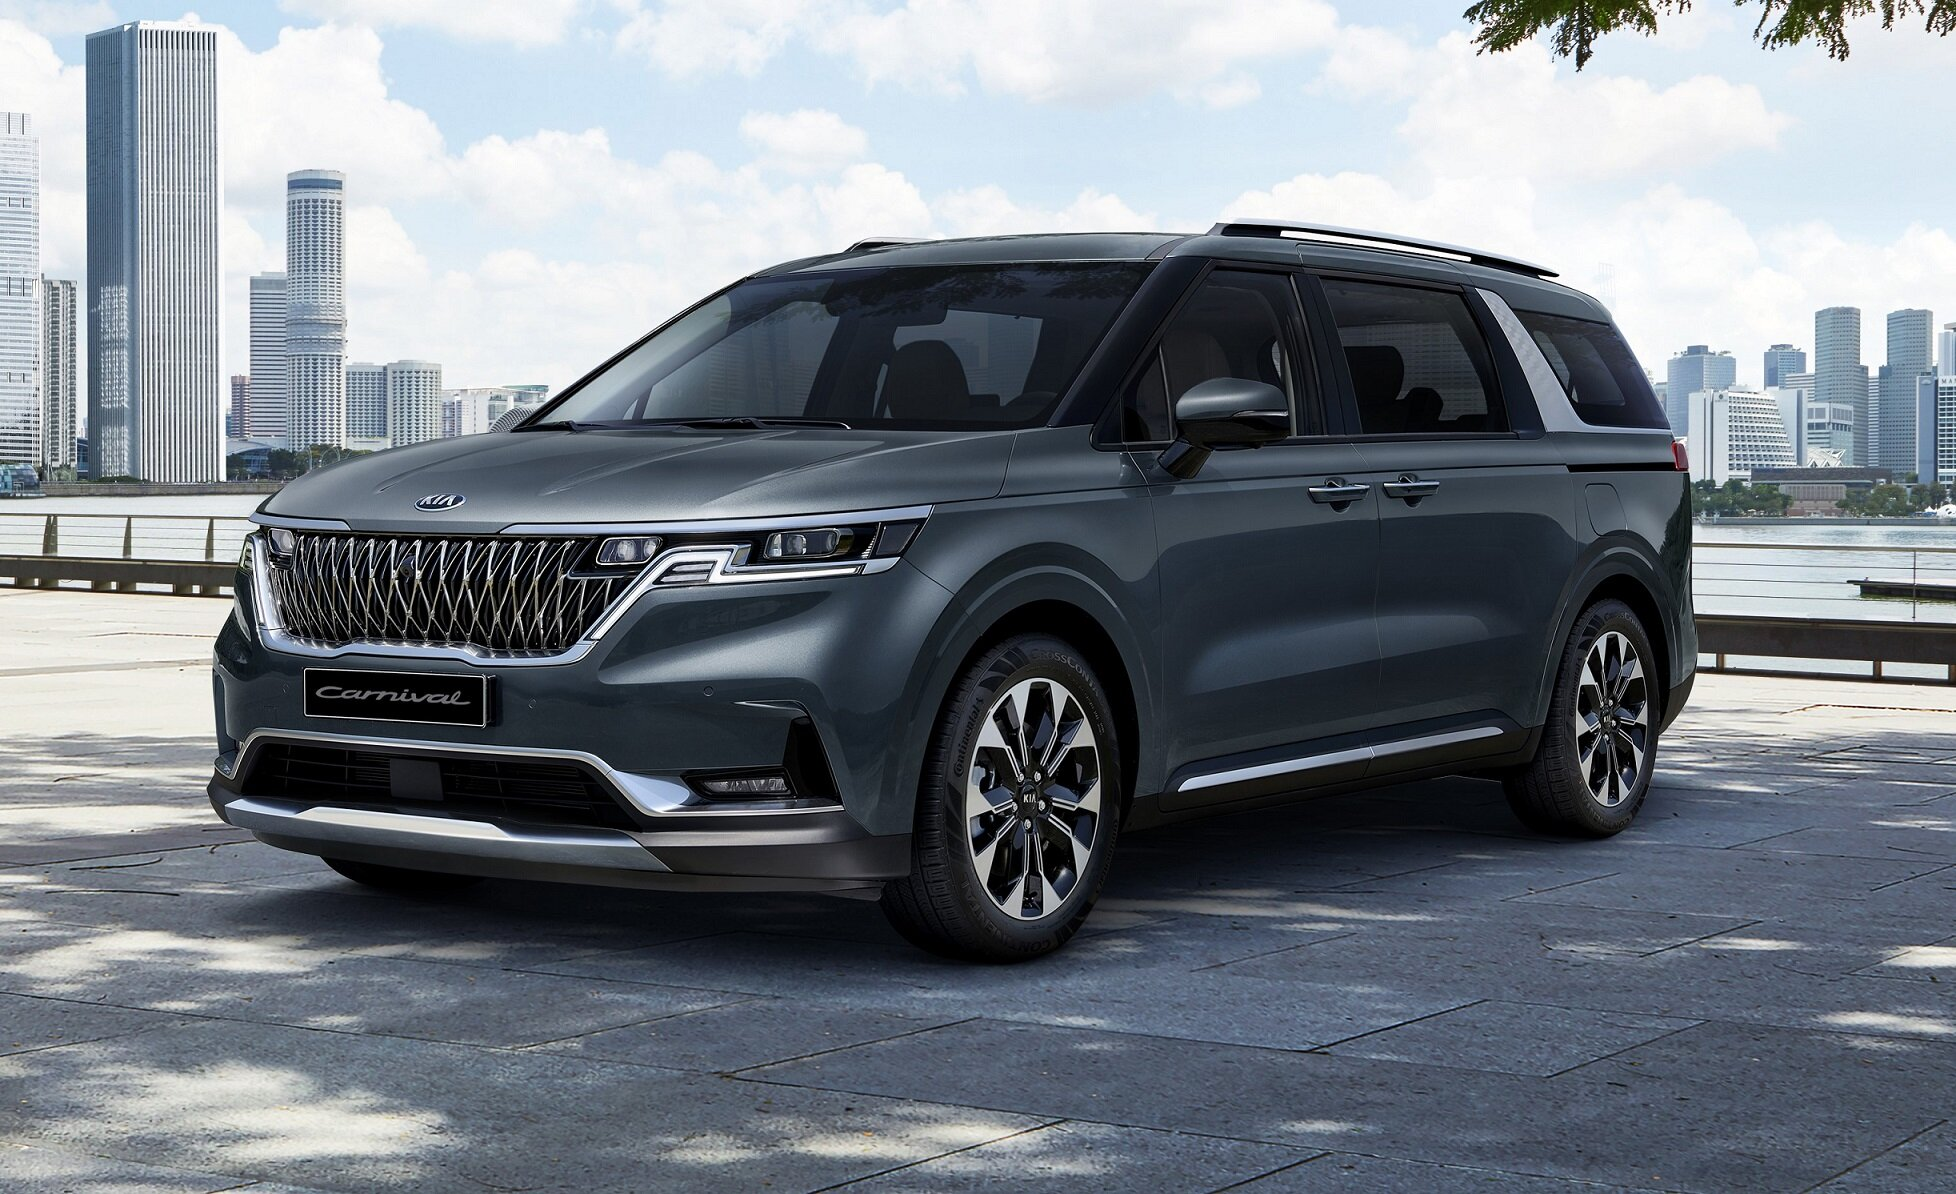 2021 Kia Carnival Australian Details And Specifications Auto Expert By John Cadogan Save Thousands On Your Next New Car